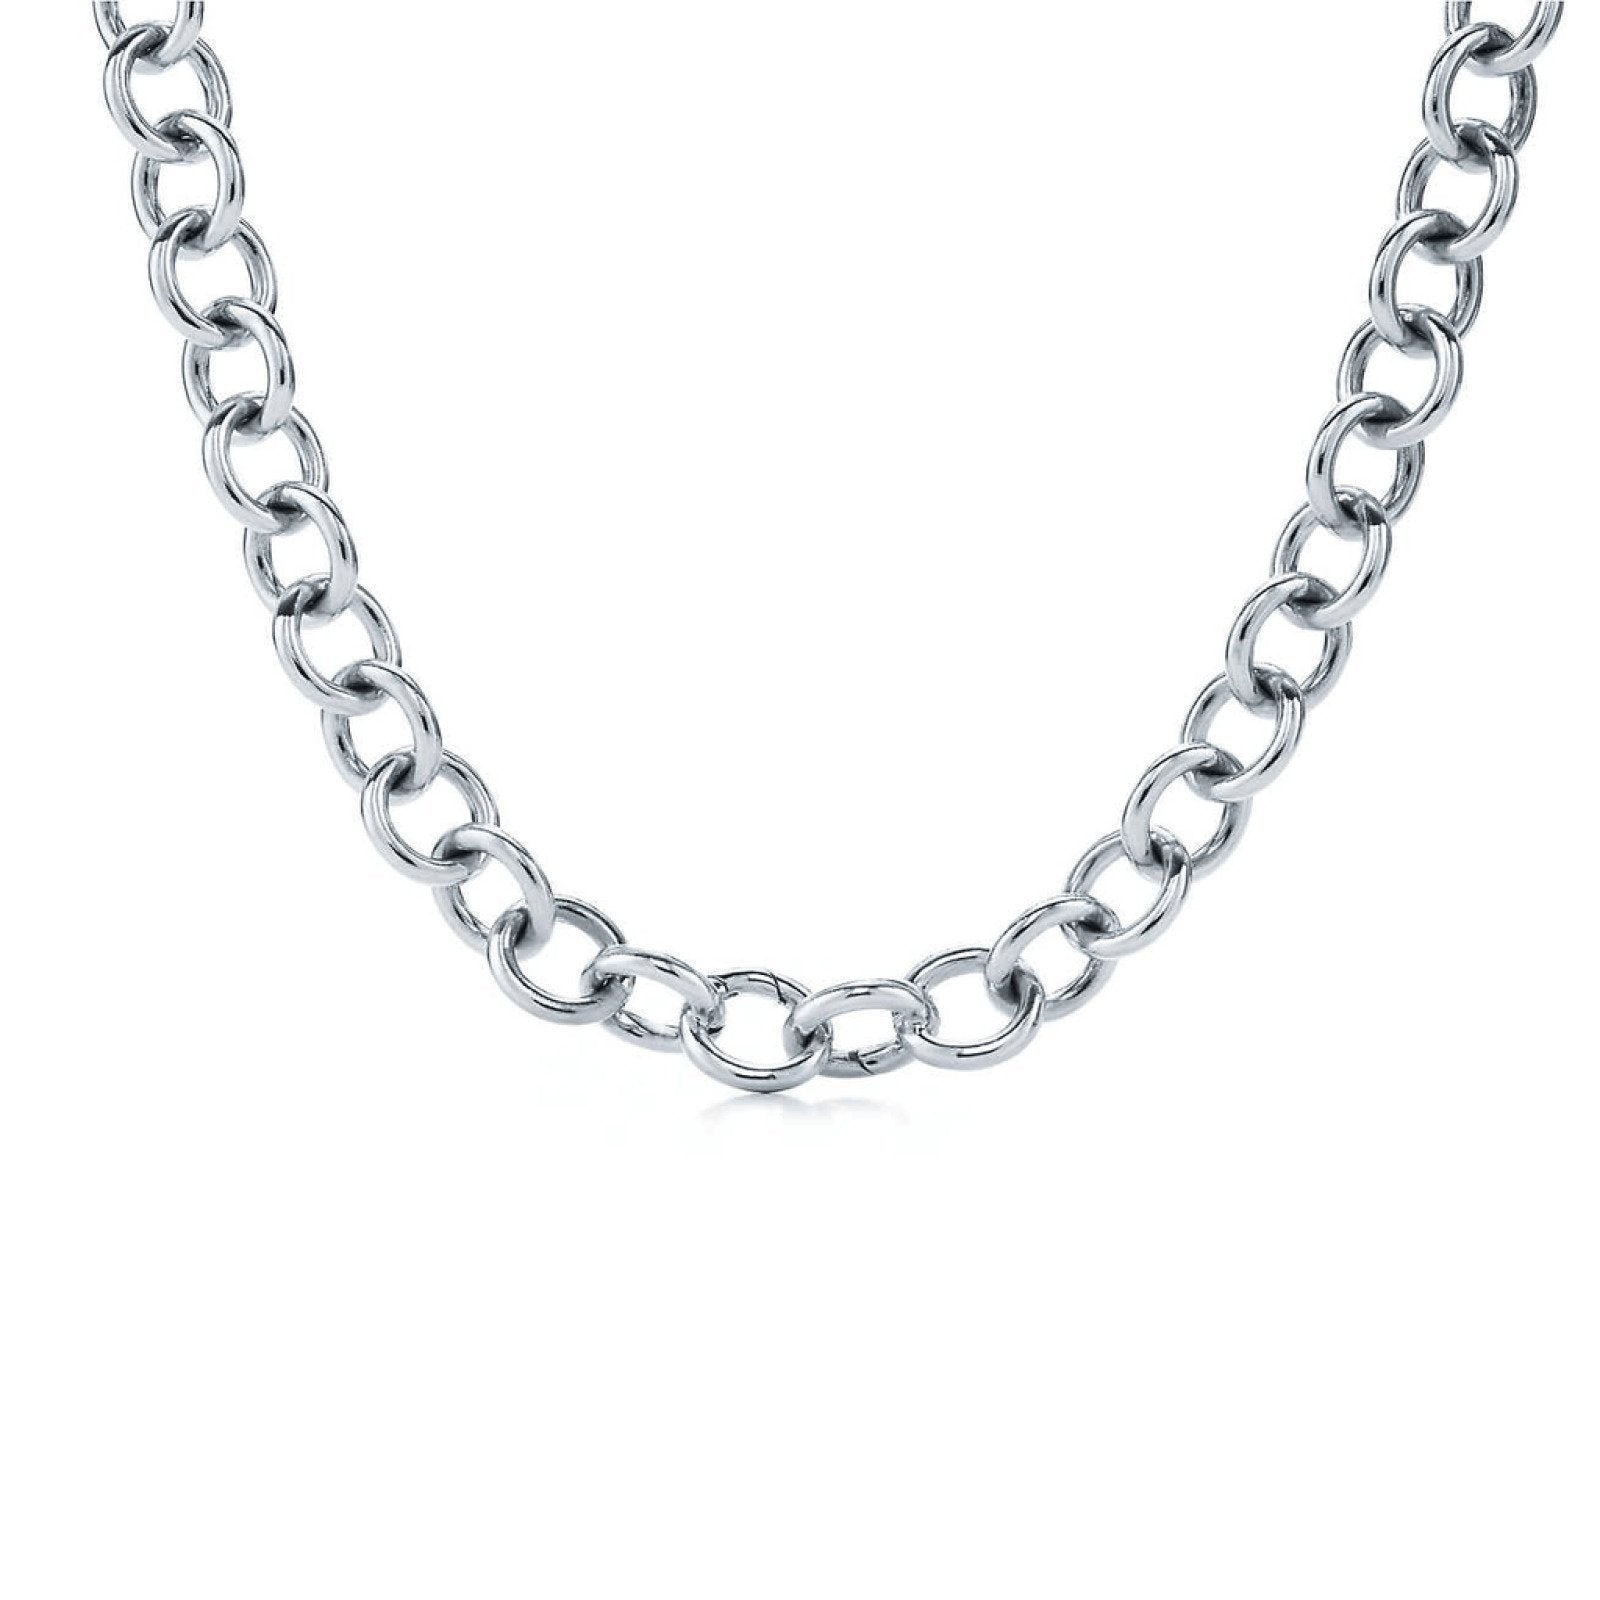 3b6a75dcc Tiffany & Co. Round Link Chain– Oliver Jewellery